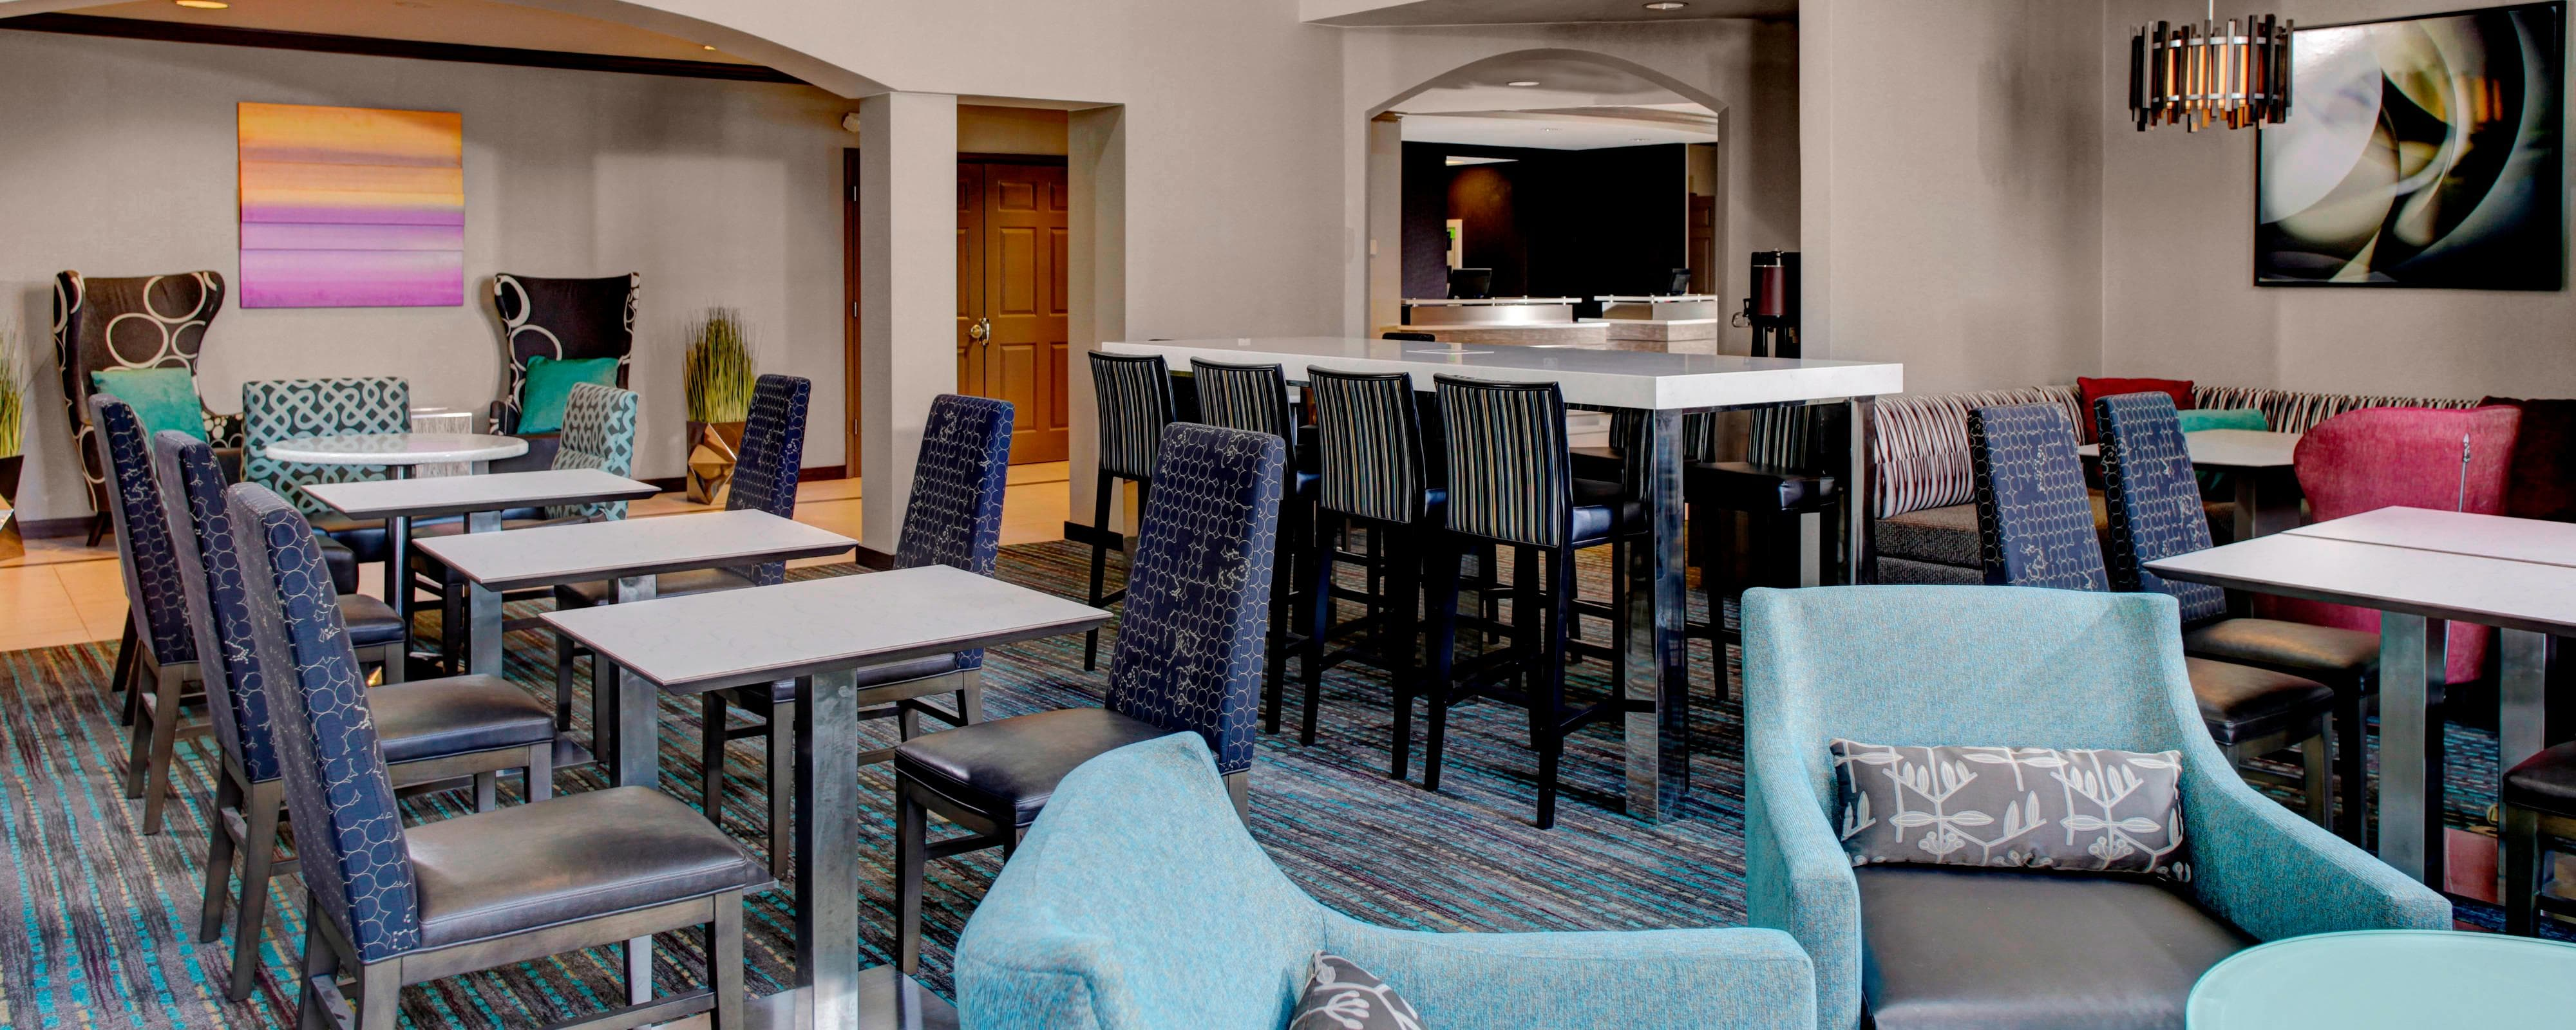 Cleveland Mentor extended stay hotels